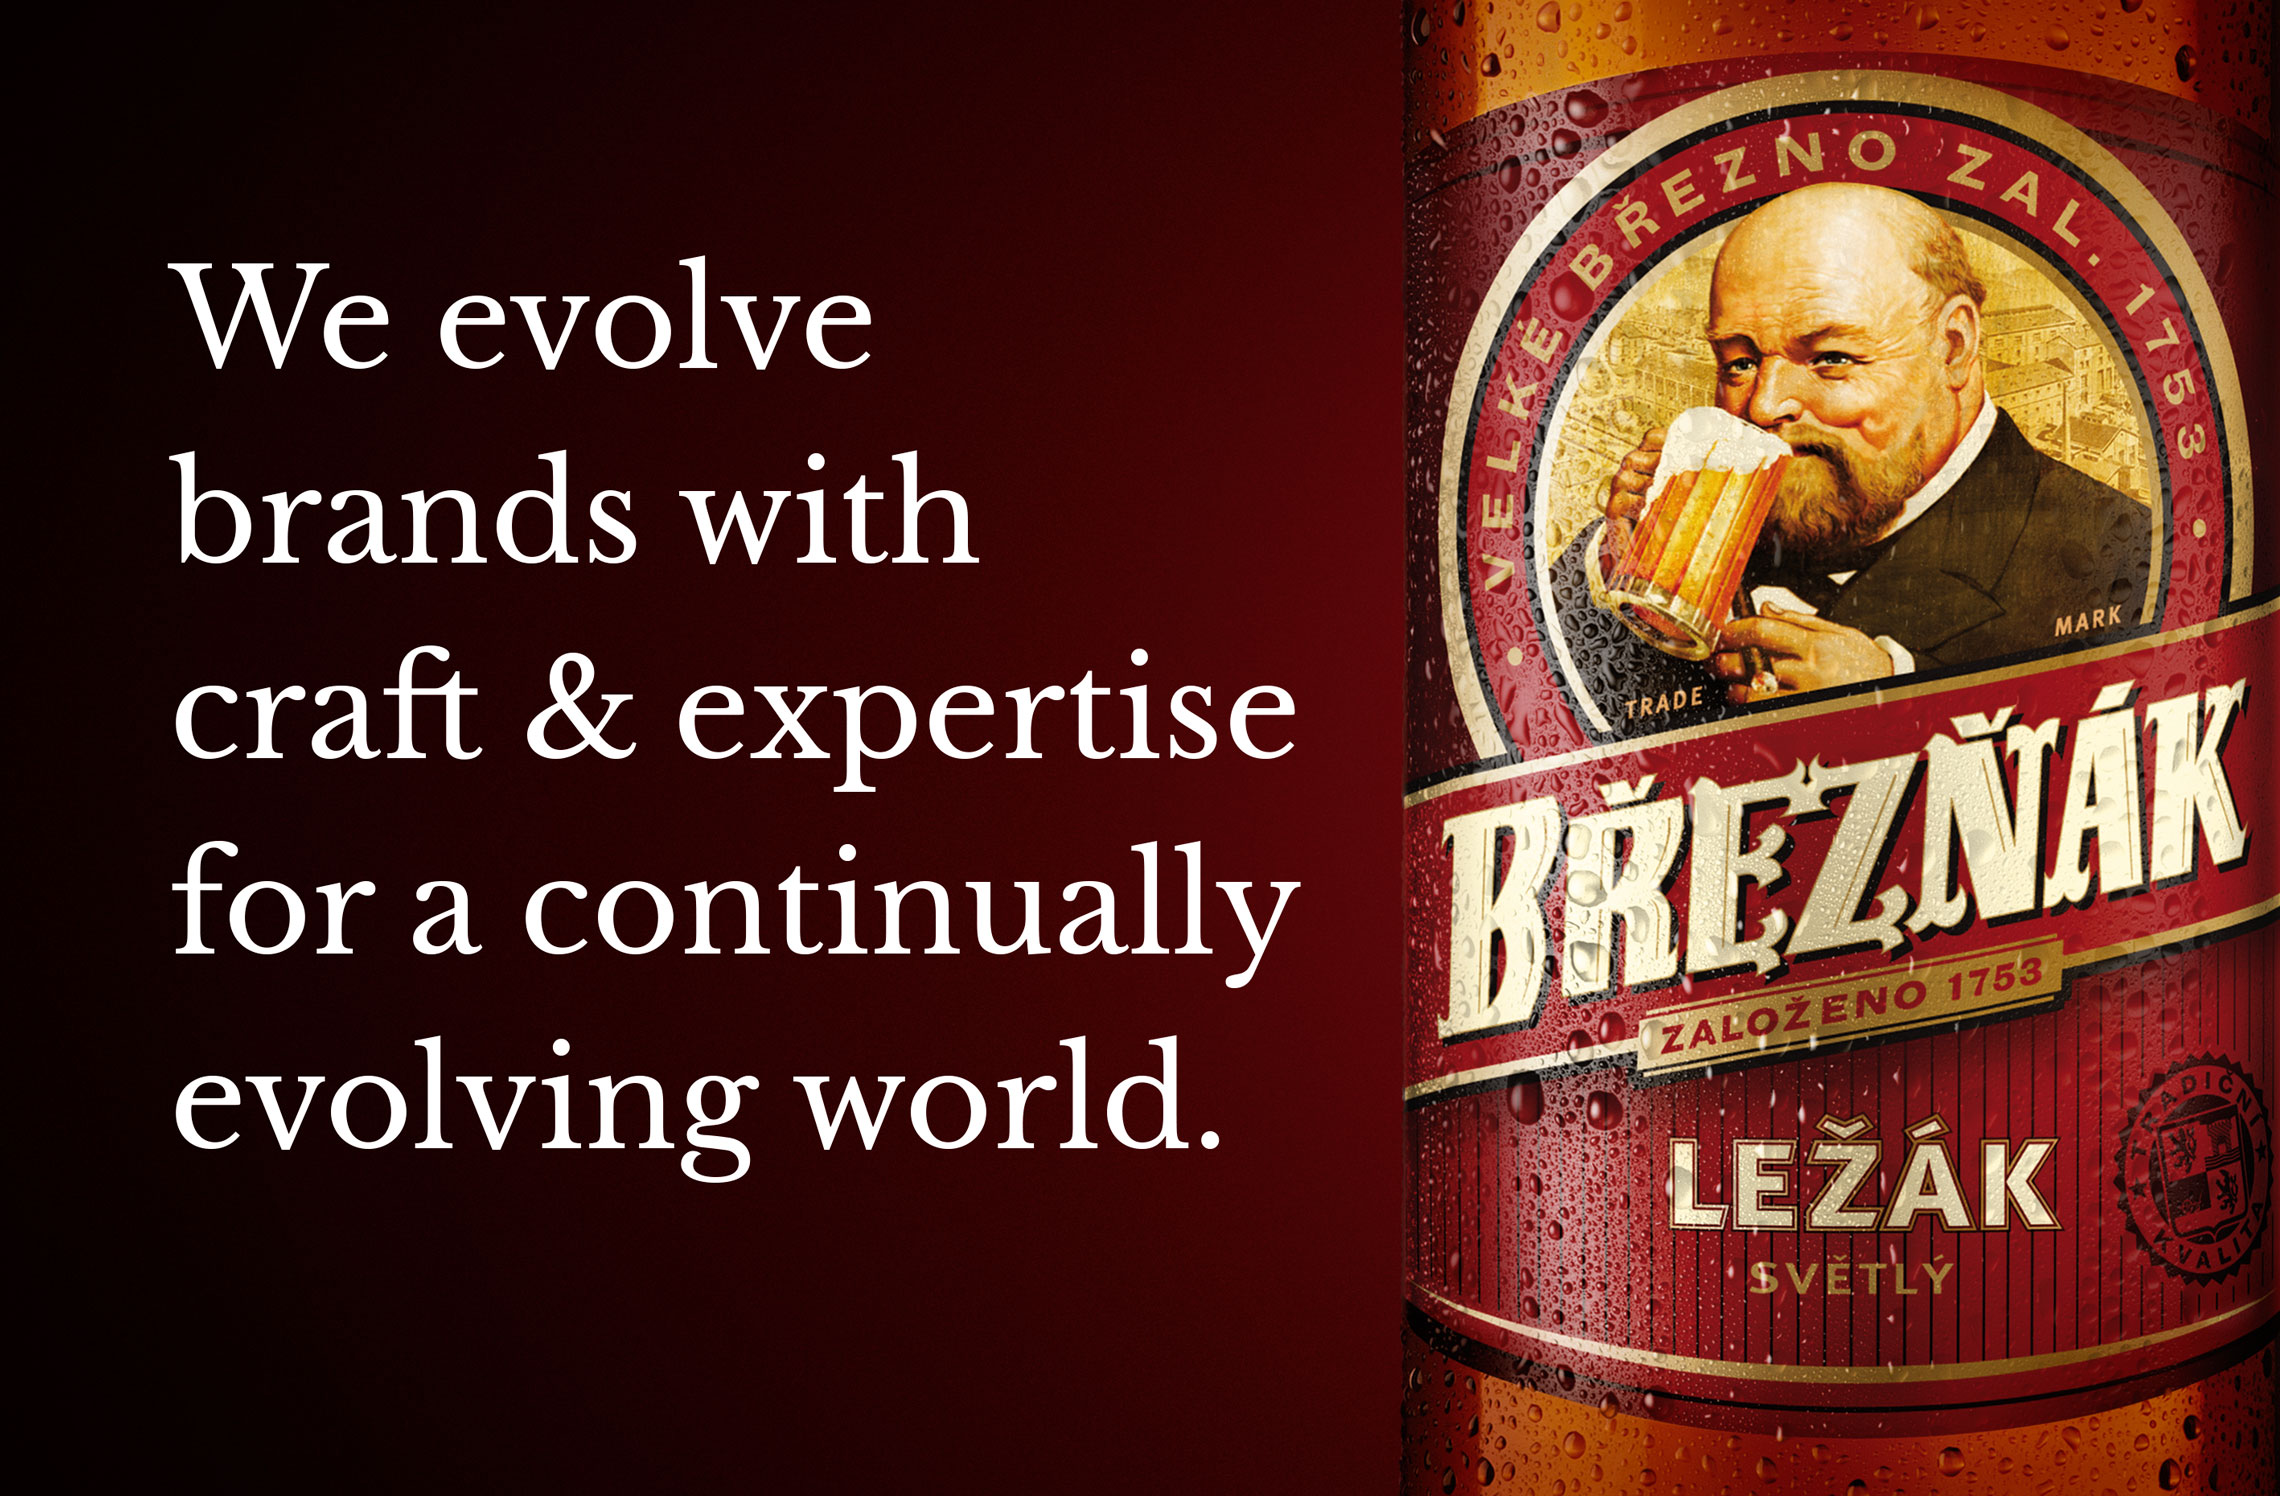 We evolve brands with craft & expertise for a continually evolving world